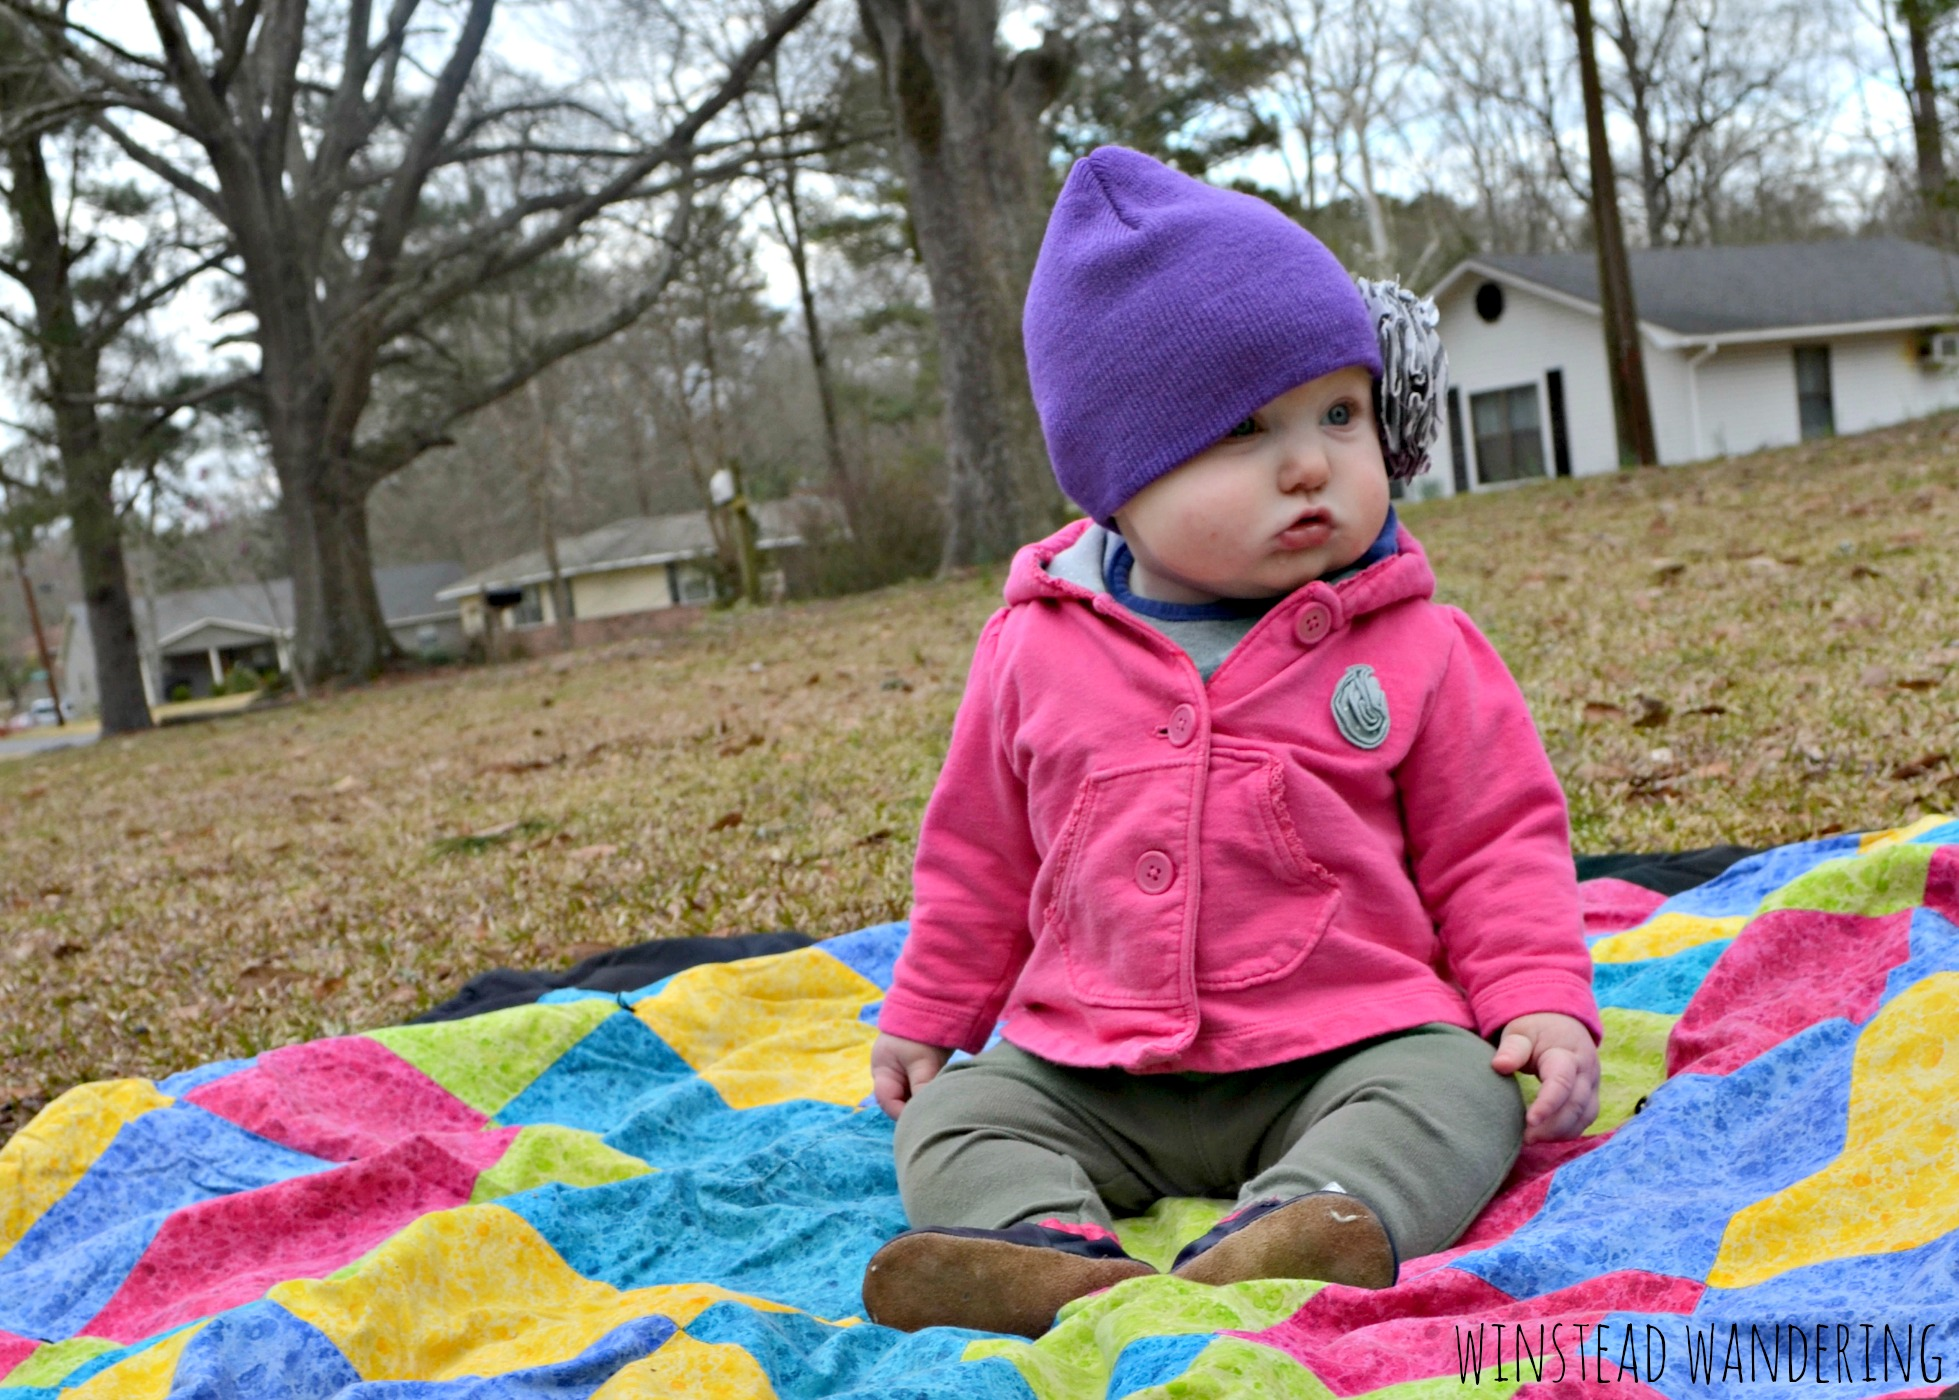 5 things you don't need for baby | winstead wandering